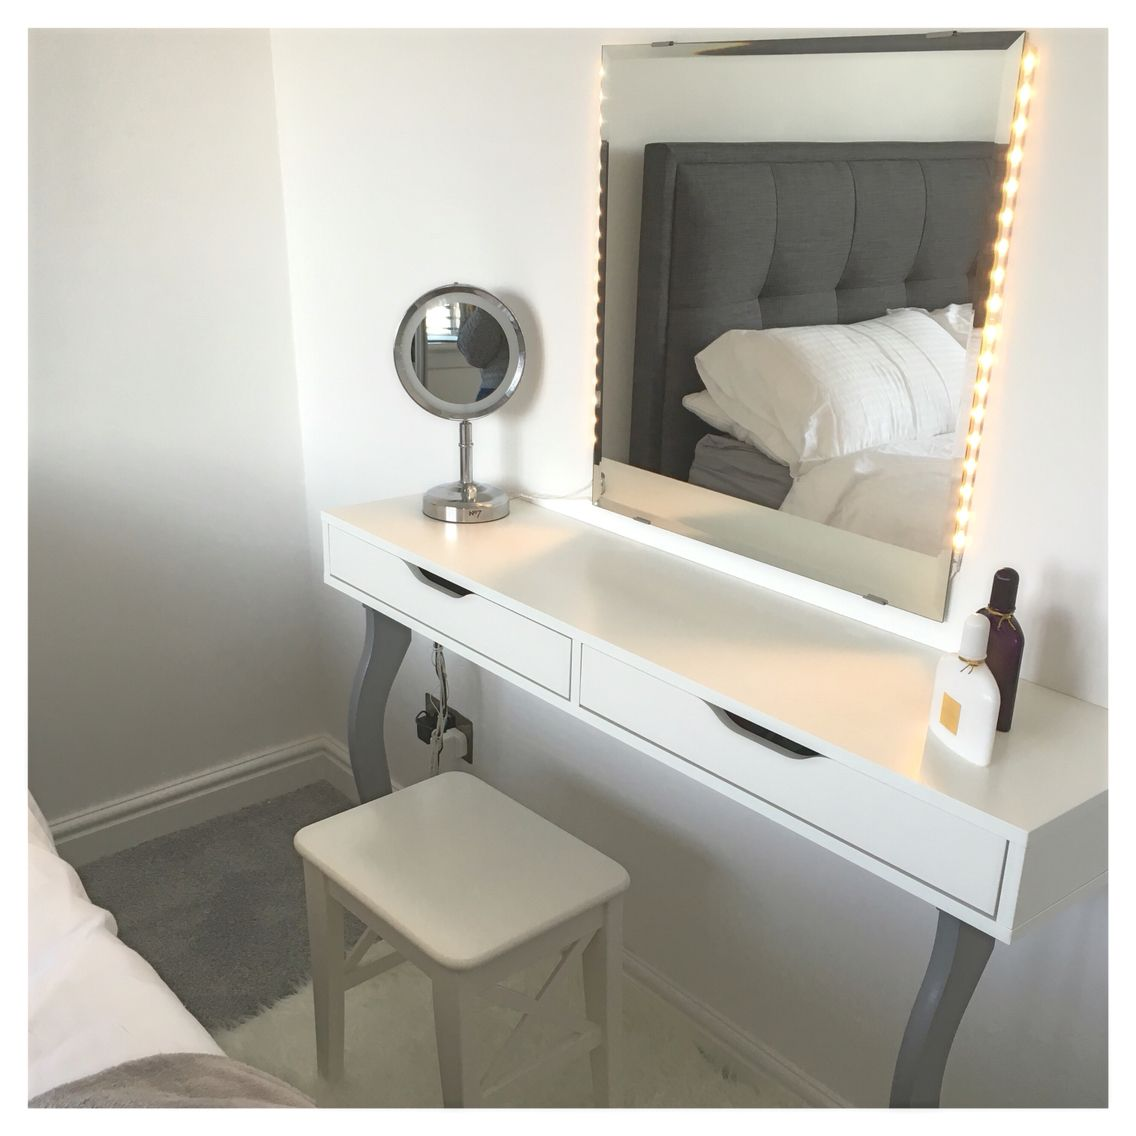 ikea hack ekby alex shelf with kolja mirror and dioder lights diy pinterest ikea hack. Black Bedroom Furniture Sets. Home Design Ideas